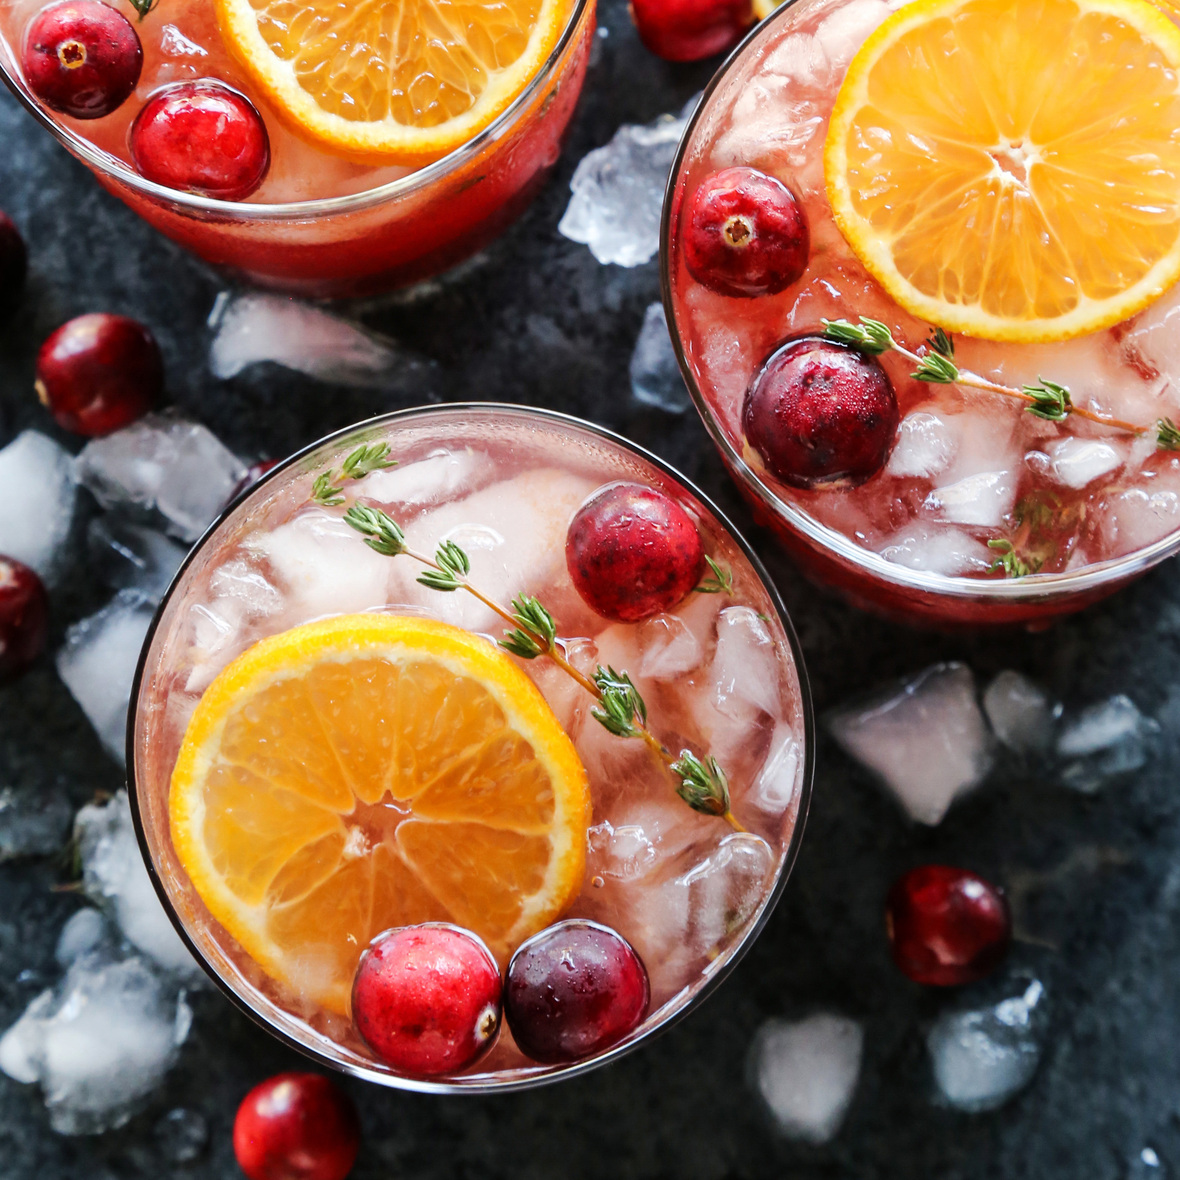 Cranberry-Thyme-Gin-and-Tonic AFarmgirlsDabbles AFD-1